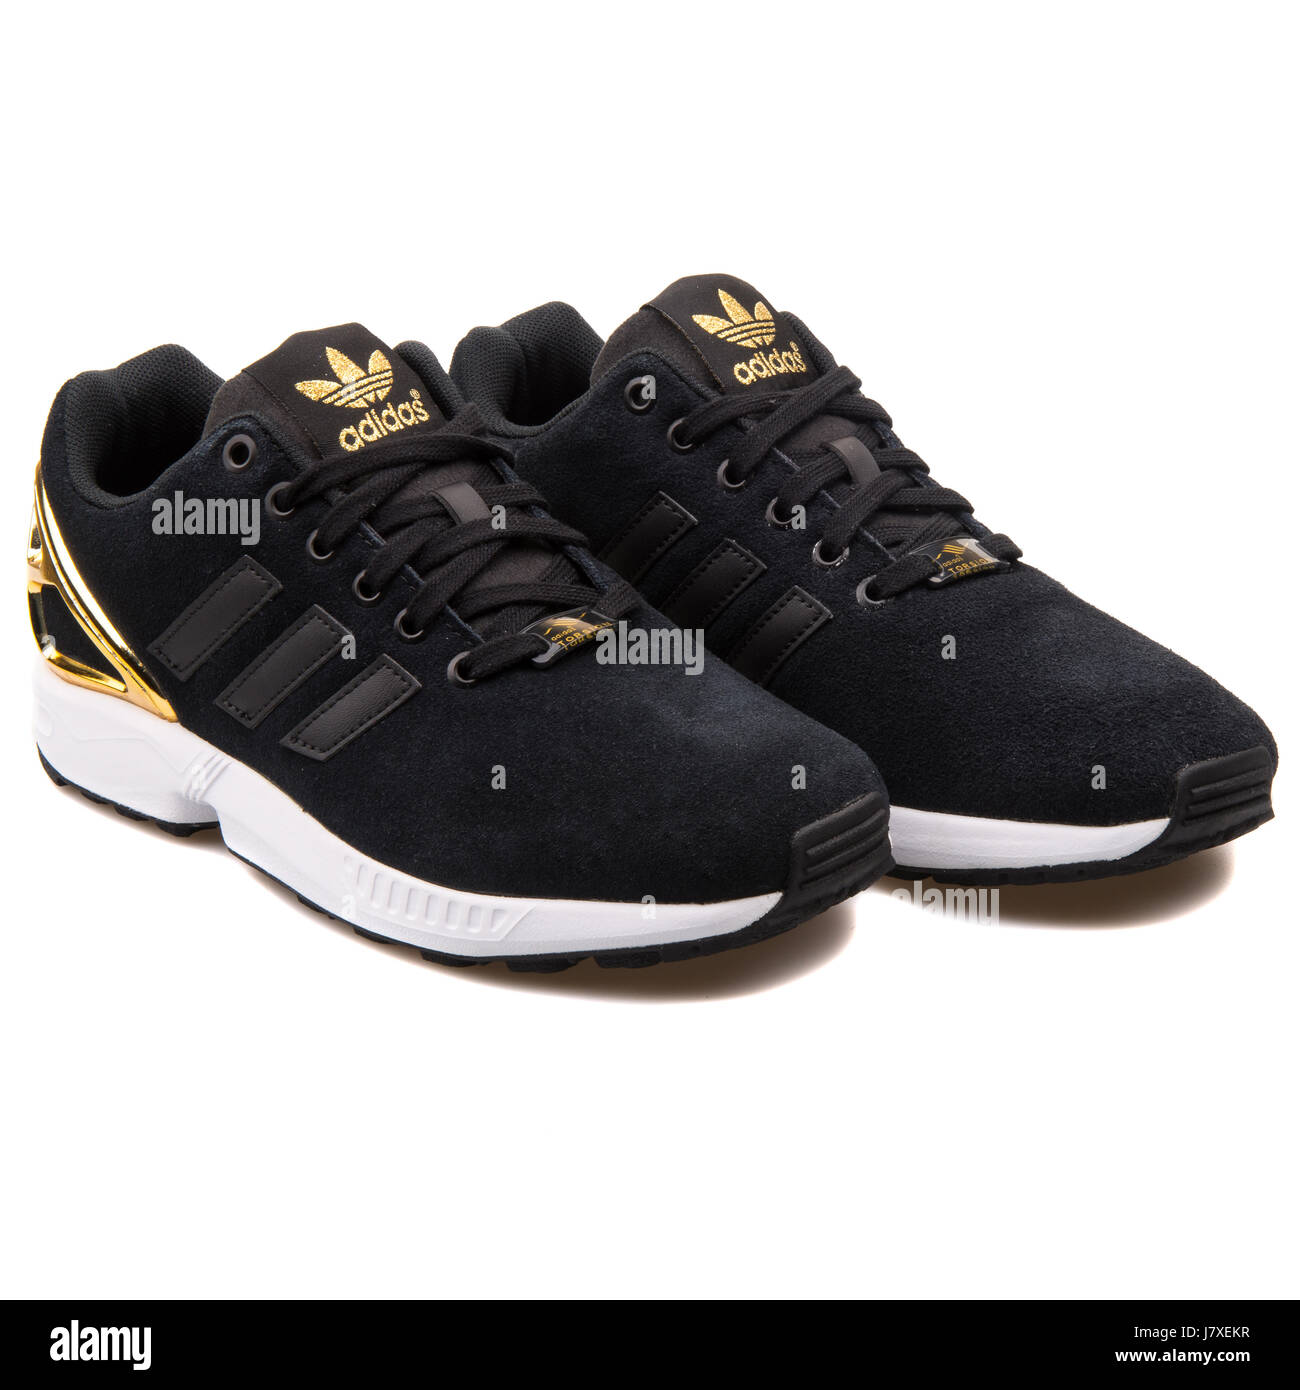 premium selection 27508 3947b adidas zx flux mujer negro y oro